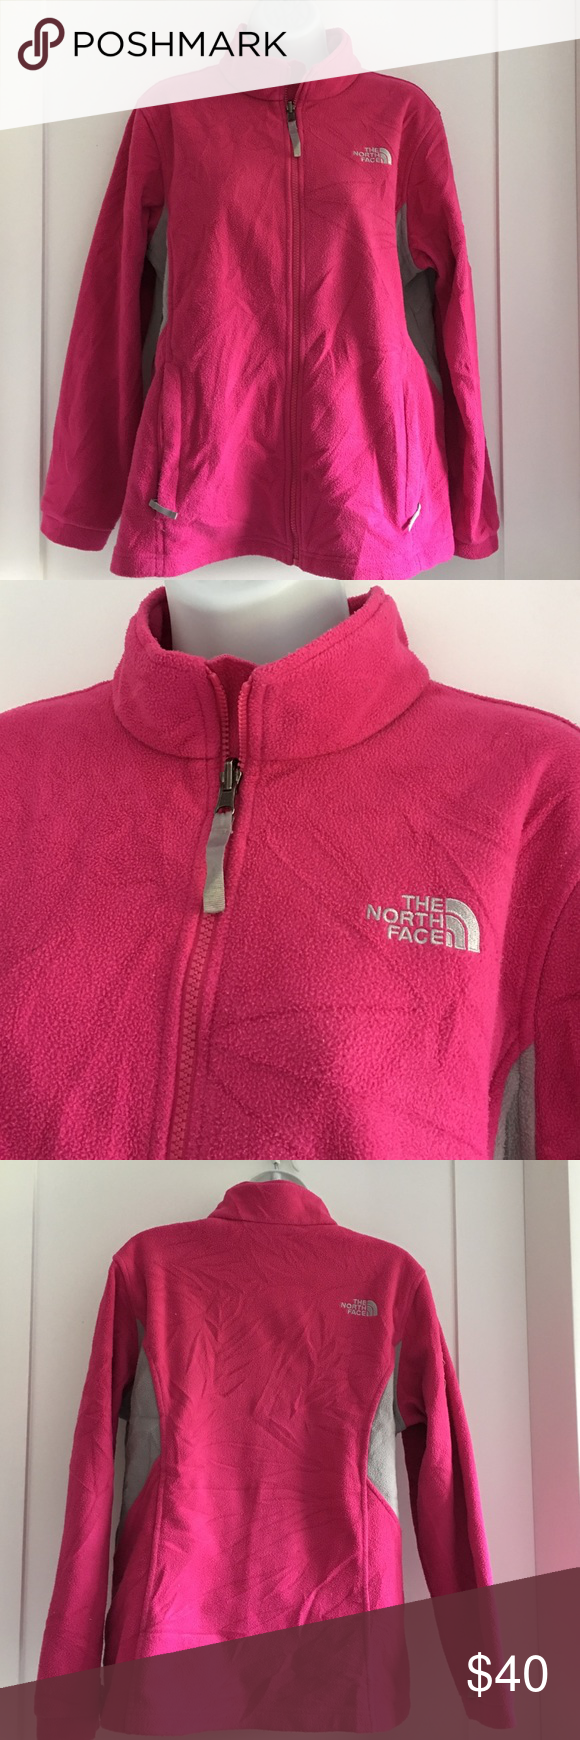 The North Face Fleece Jacket Preowned The North Face Fleece Jacket. Its a Girls size XL and it fits like a Women's M Petite. Please look at pictures for better reference. Happy shopping! North Face Jackets & Coats